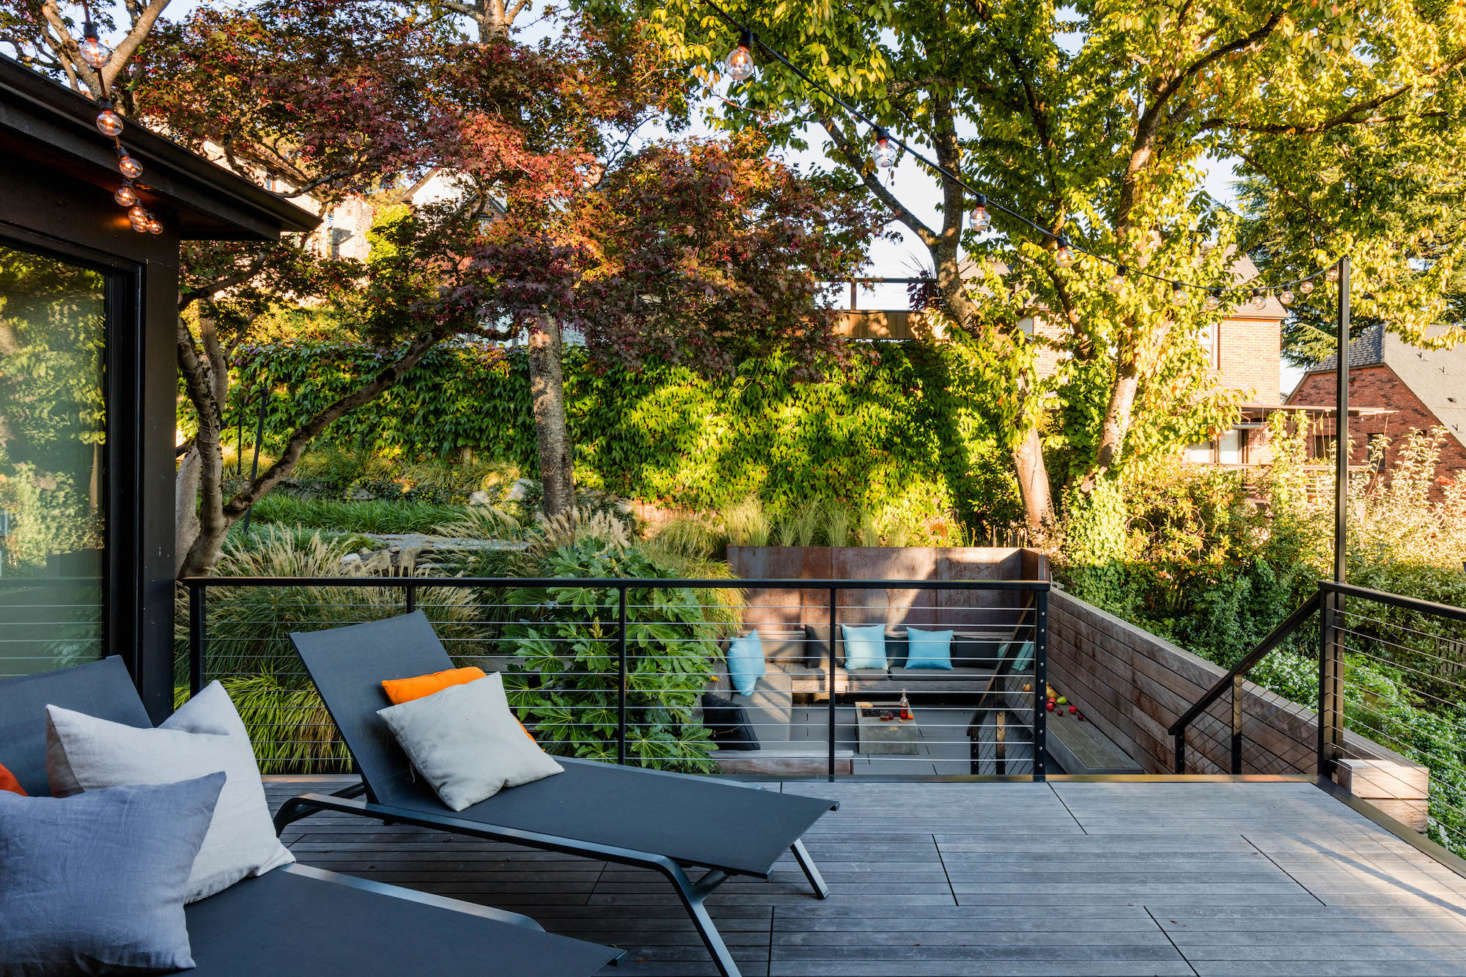 In the back of the house, the kitchen and dining area opens out onto an ipe hardwood deck that steps down to a larger outdoor living room below.